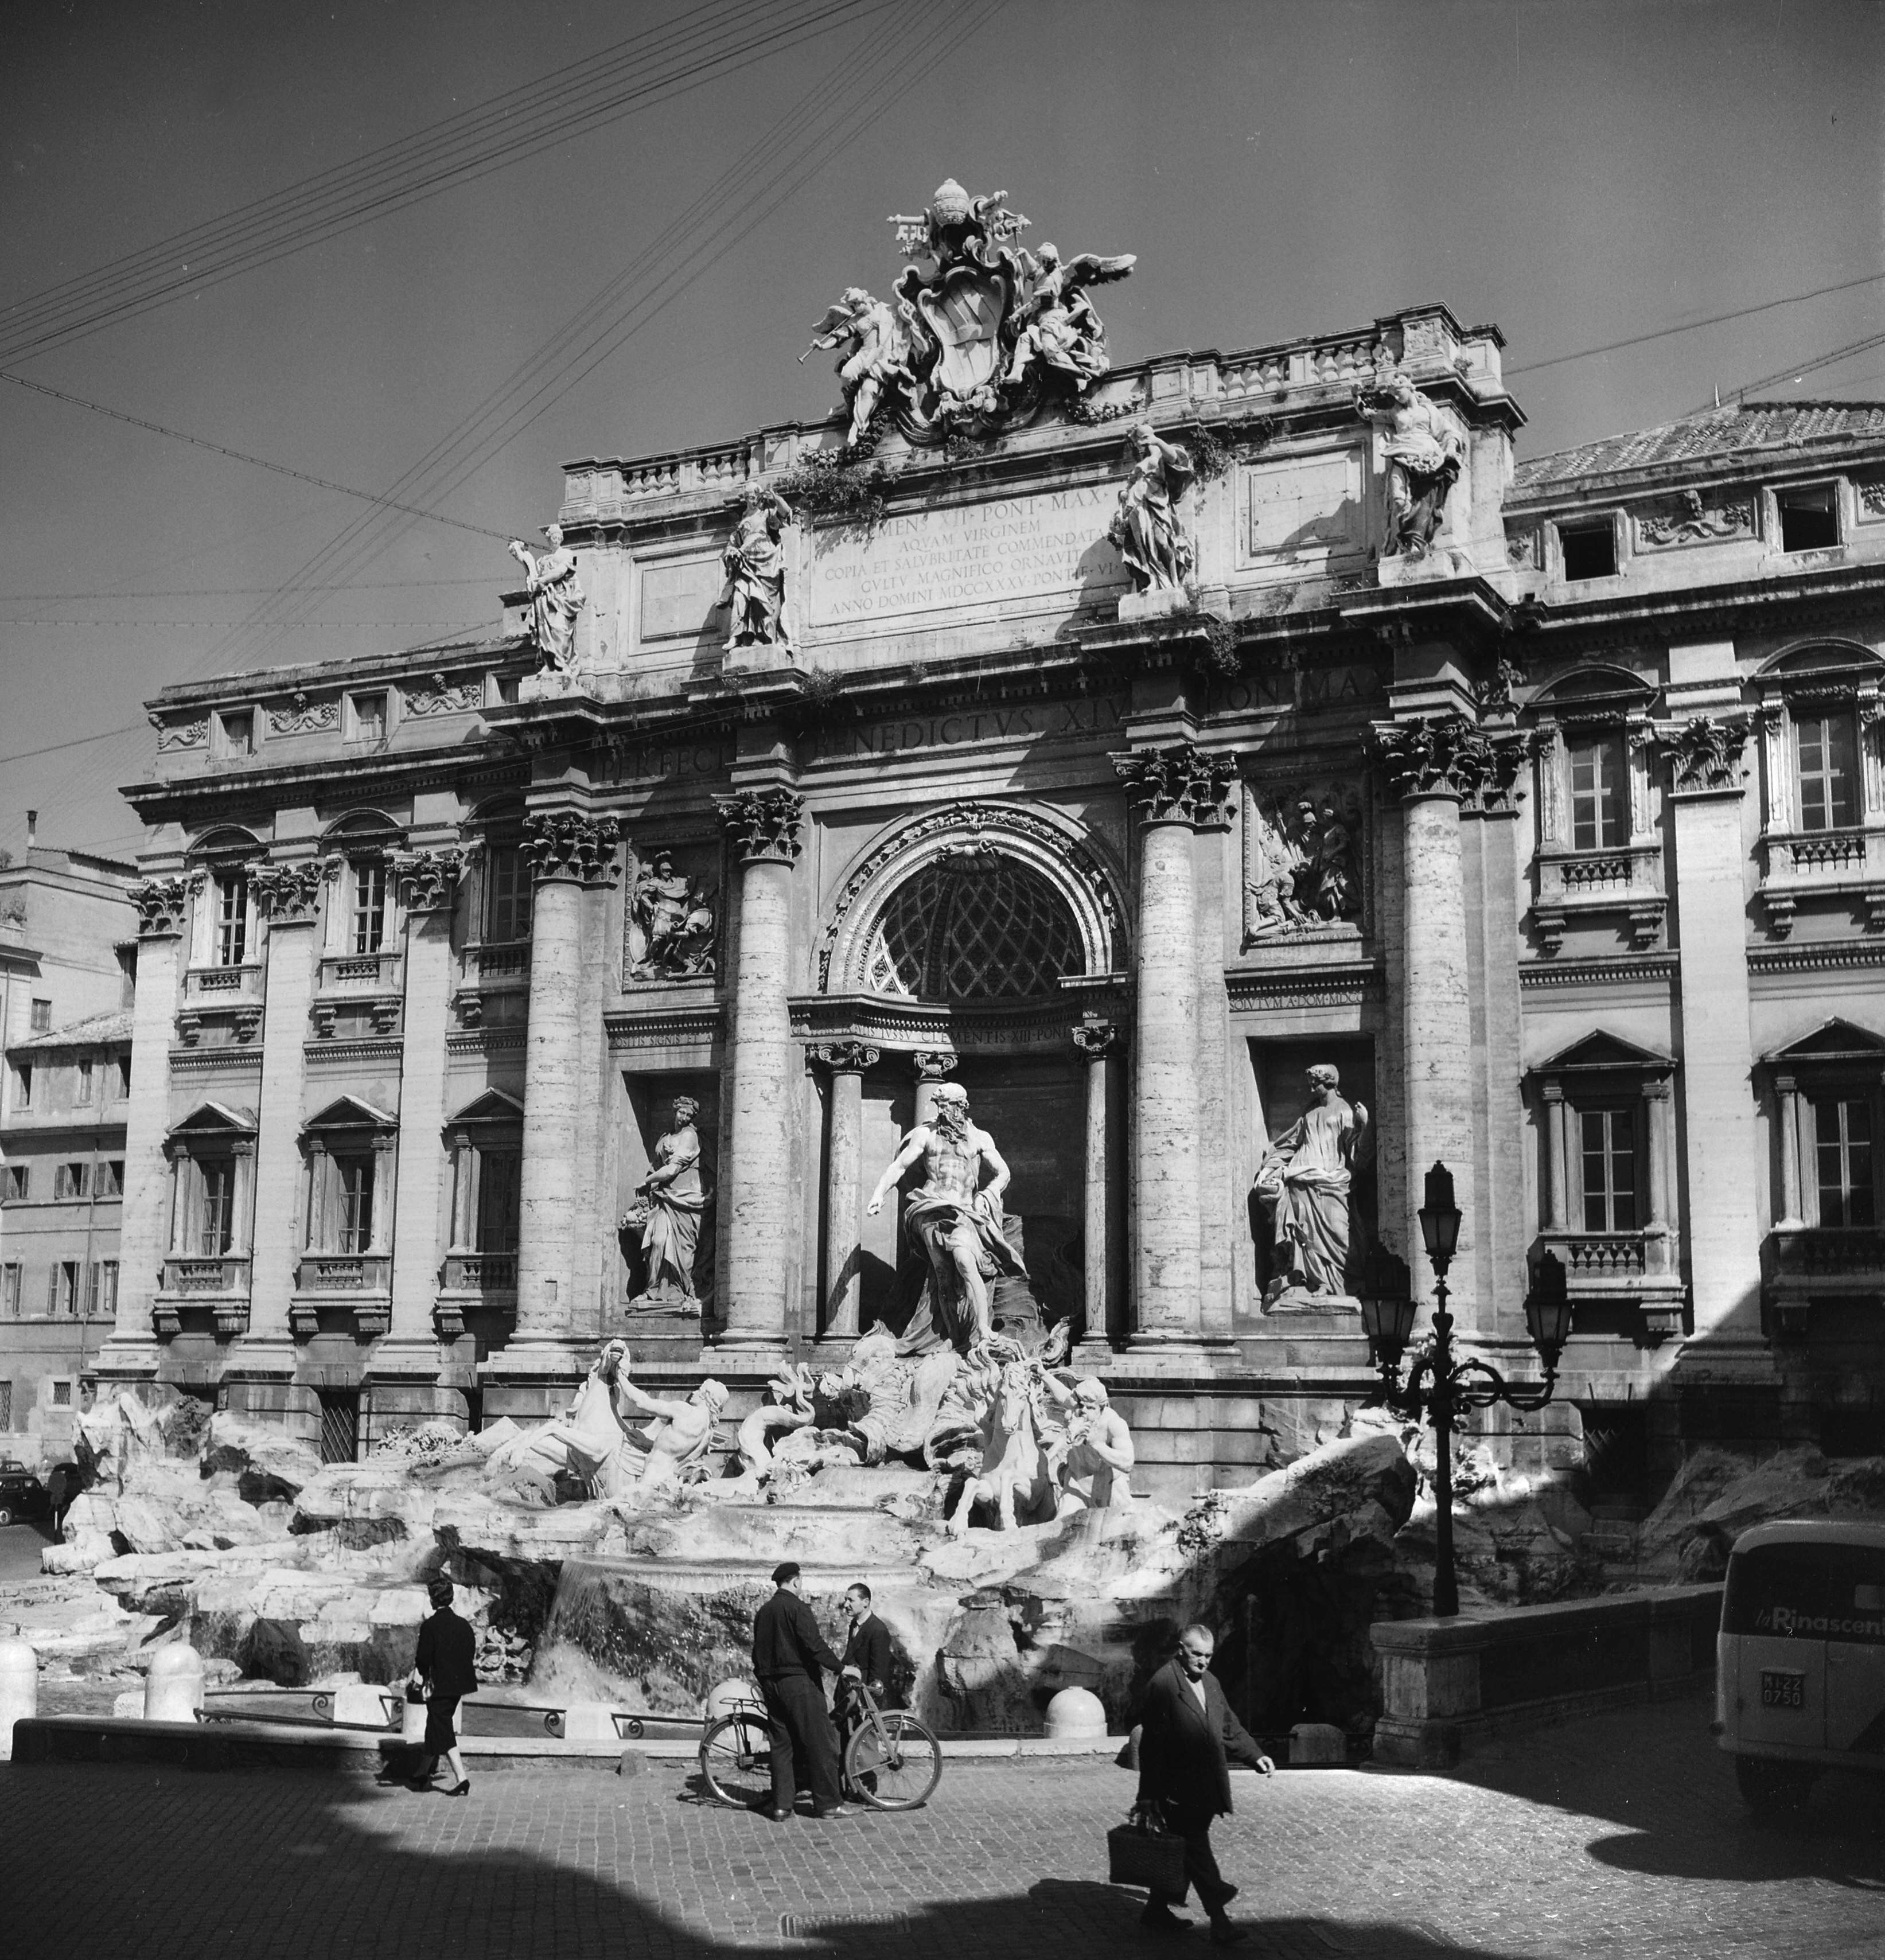 Slide 9 of 55: ITALY - CIRCA 1954: Rome (Italy). The fountain of Trevi (1762), by Niccol? Salvi, architect. May 1954. RV-109438. (Photo by Roger Viollet/Getty Images)